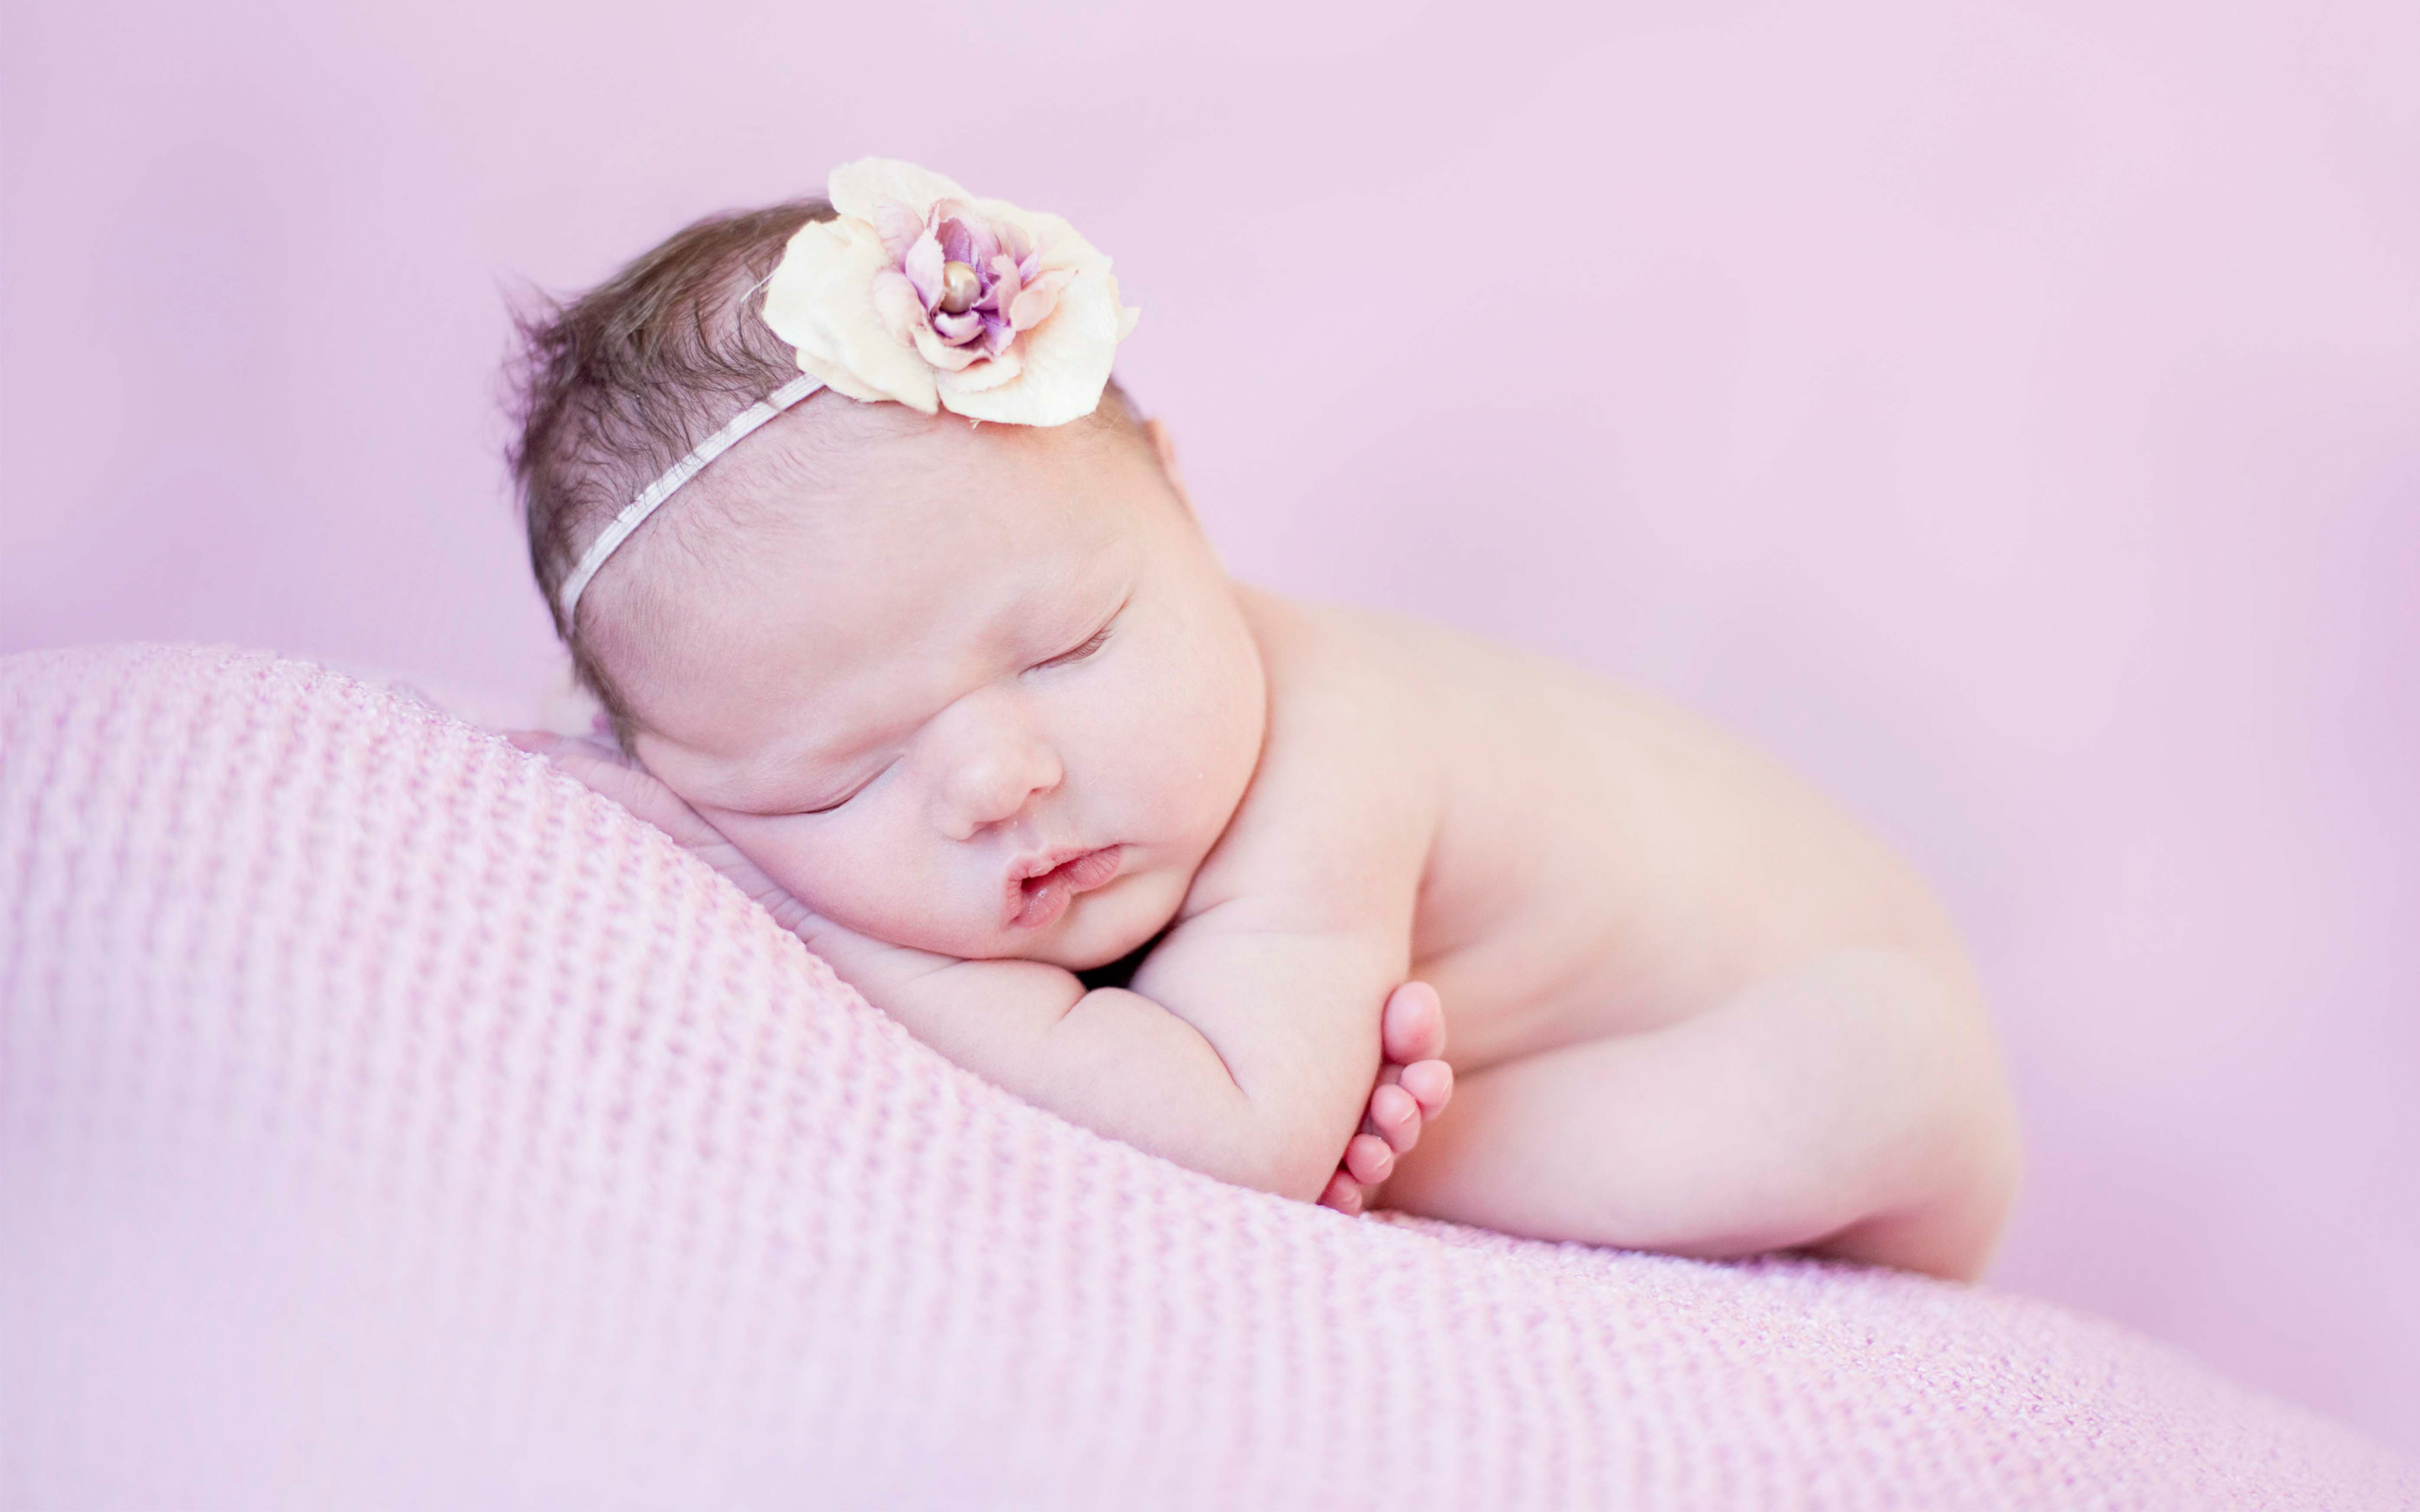 Cute Newborn wallpaper